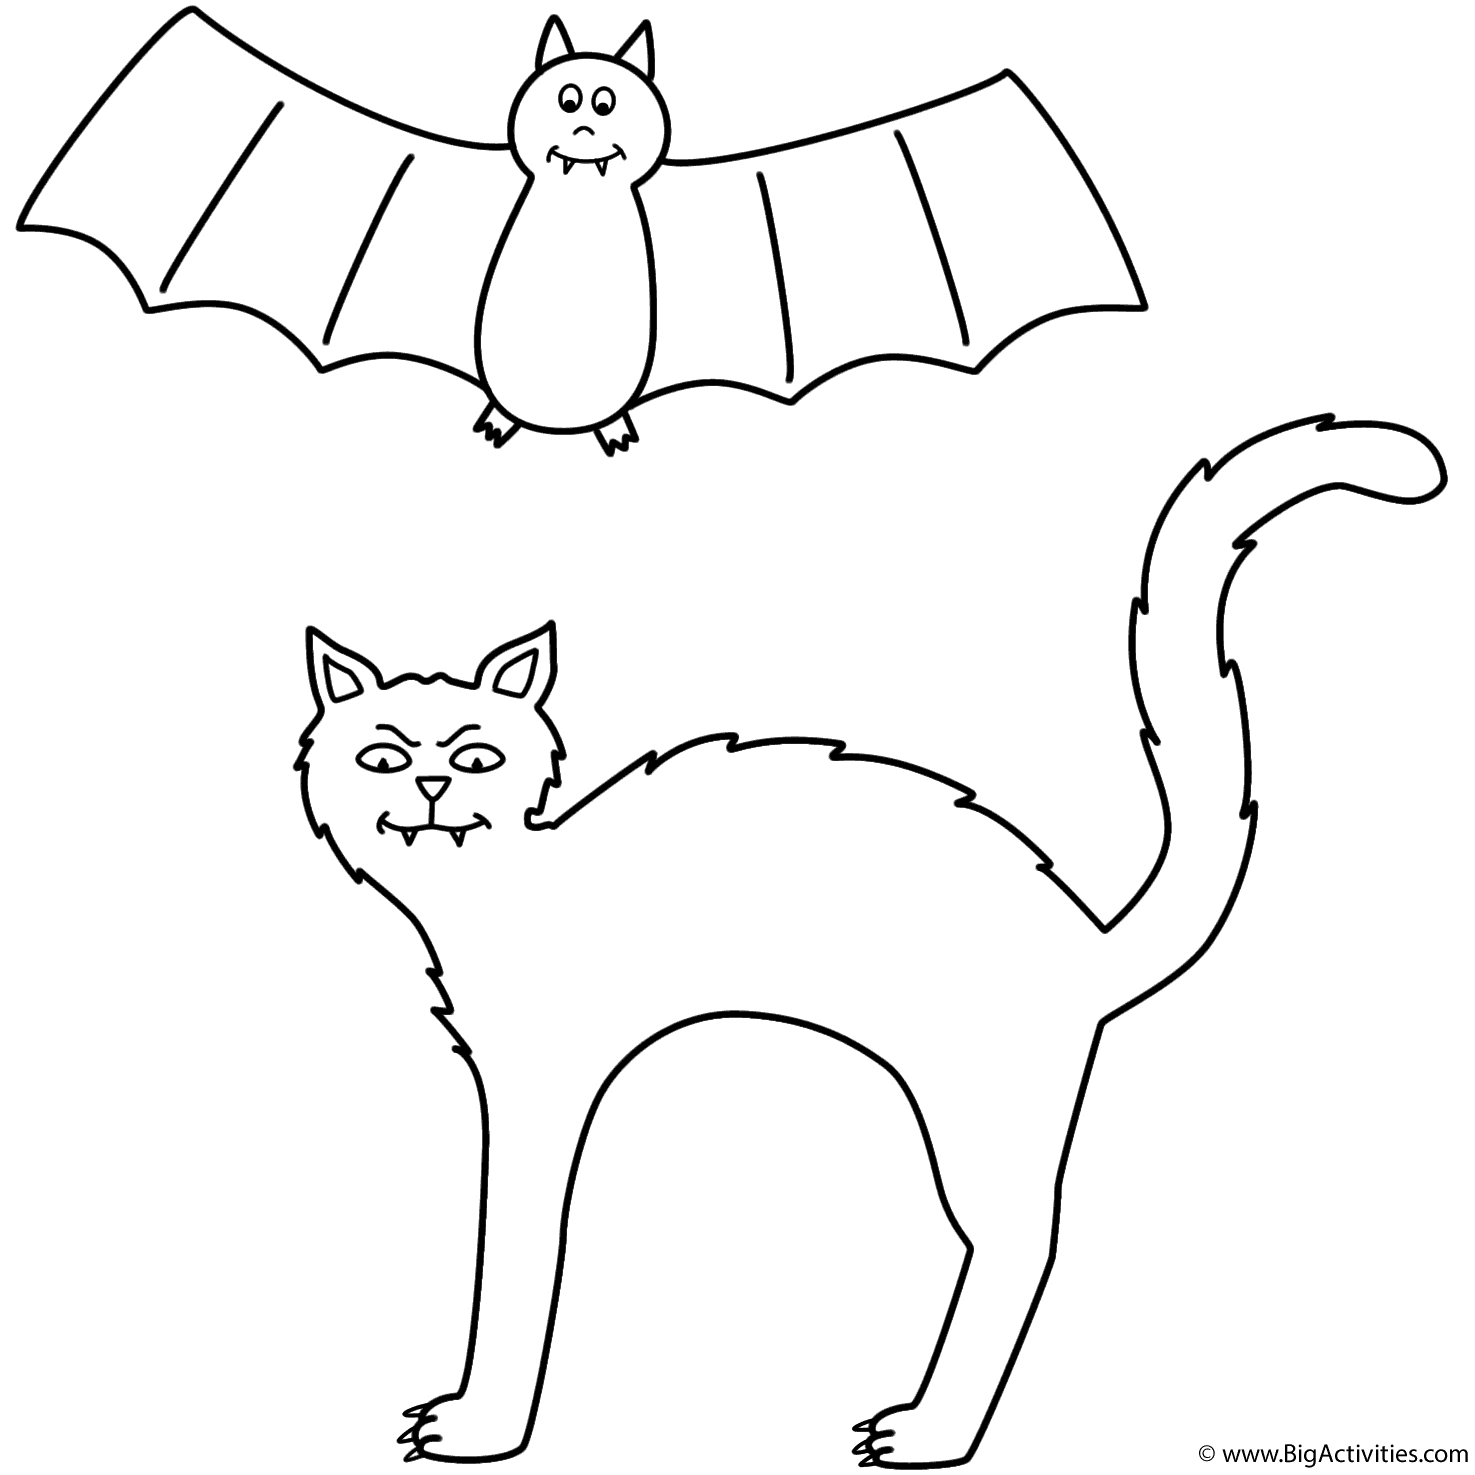 black cat coloring pages Black cat with bat   Coloring Page (Halloween) black cat coloring pages